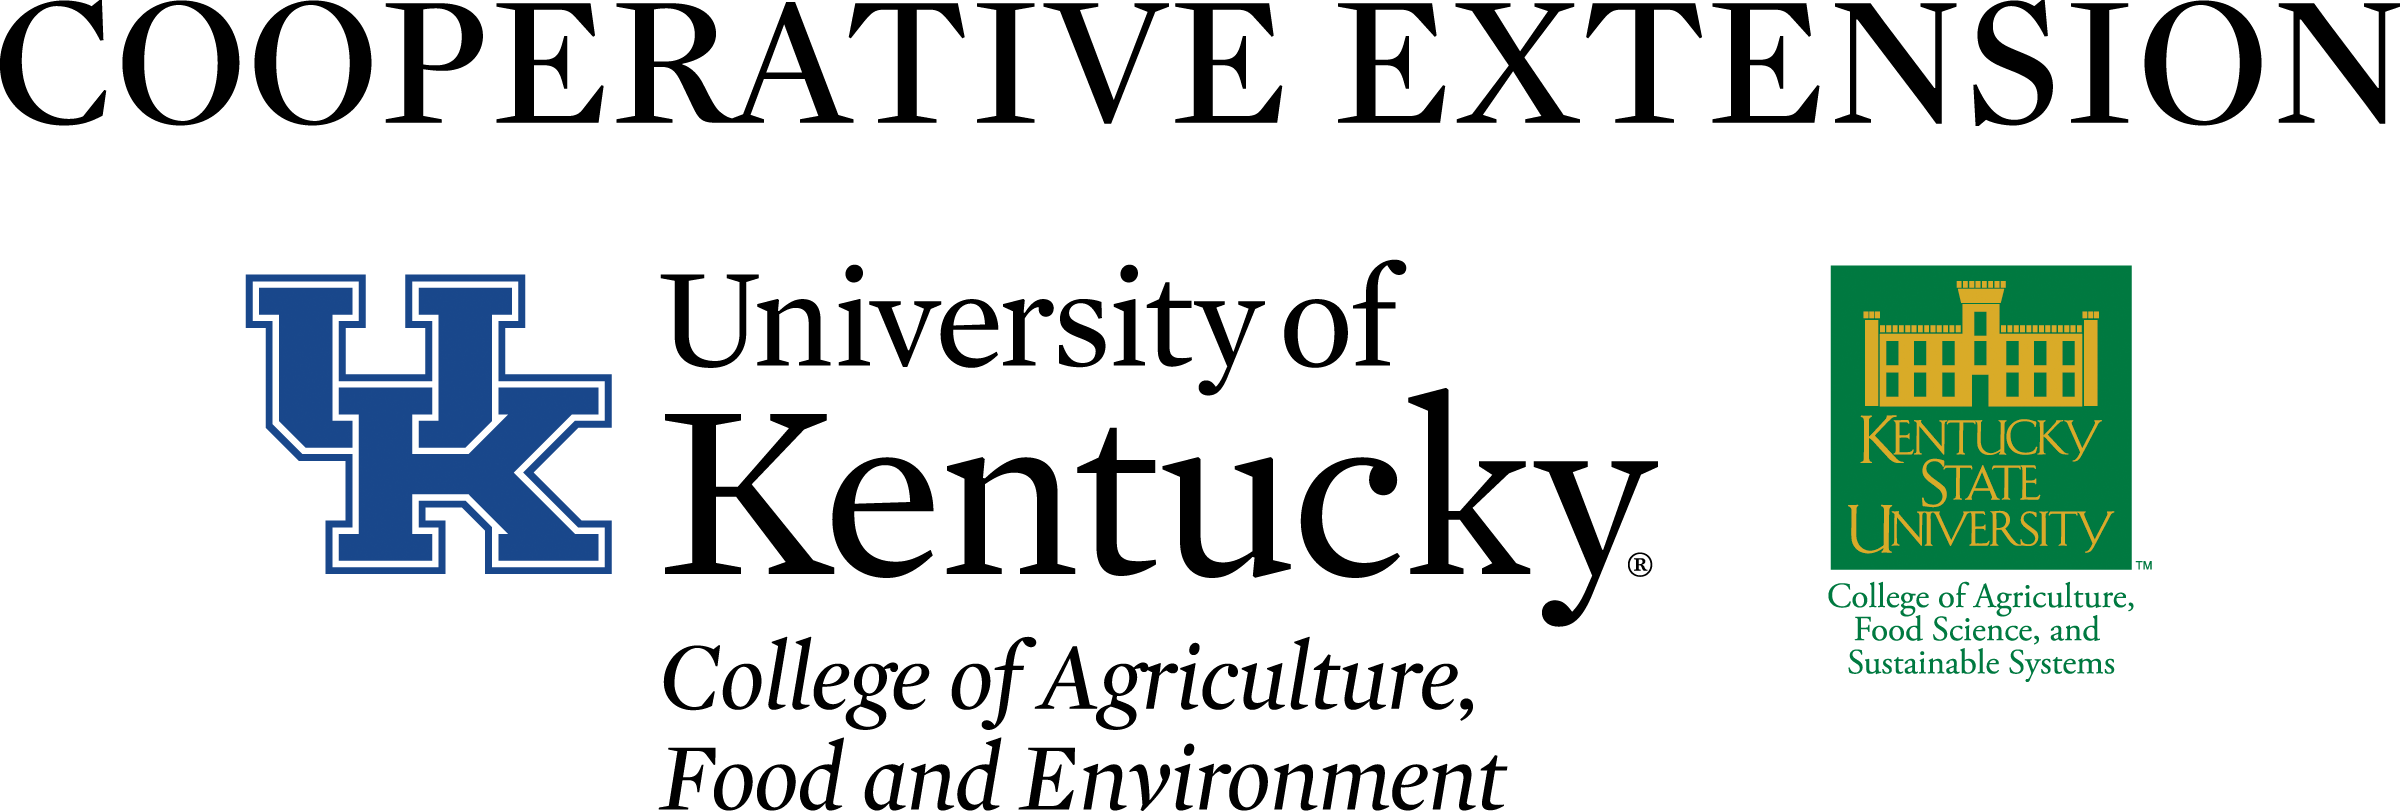 UK Extension and KSU Logo